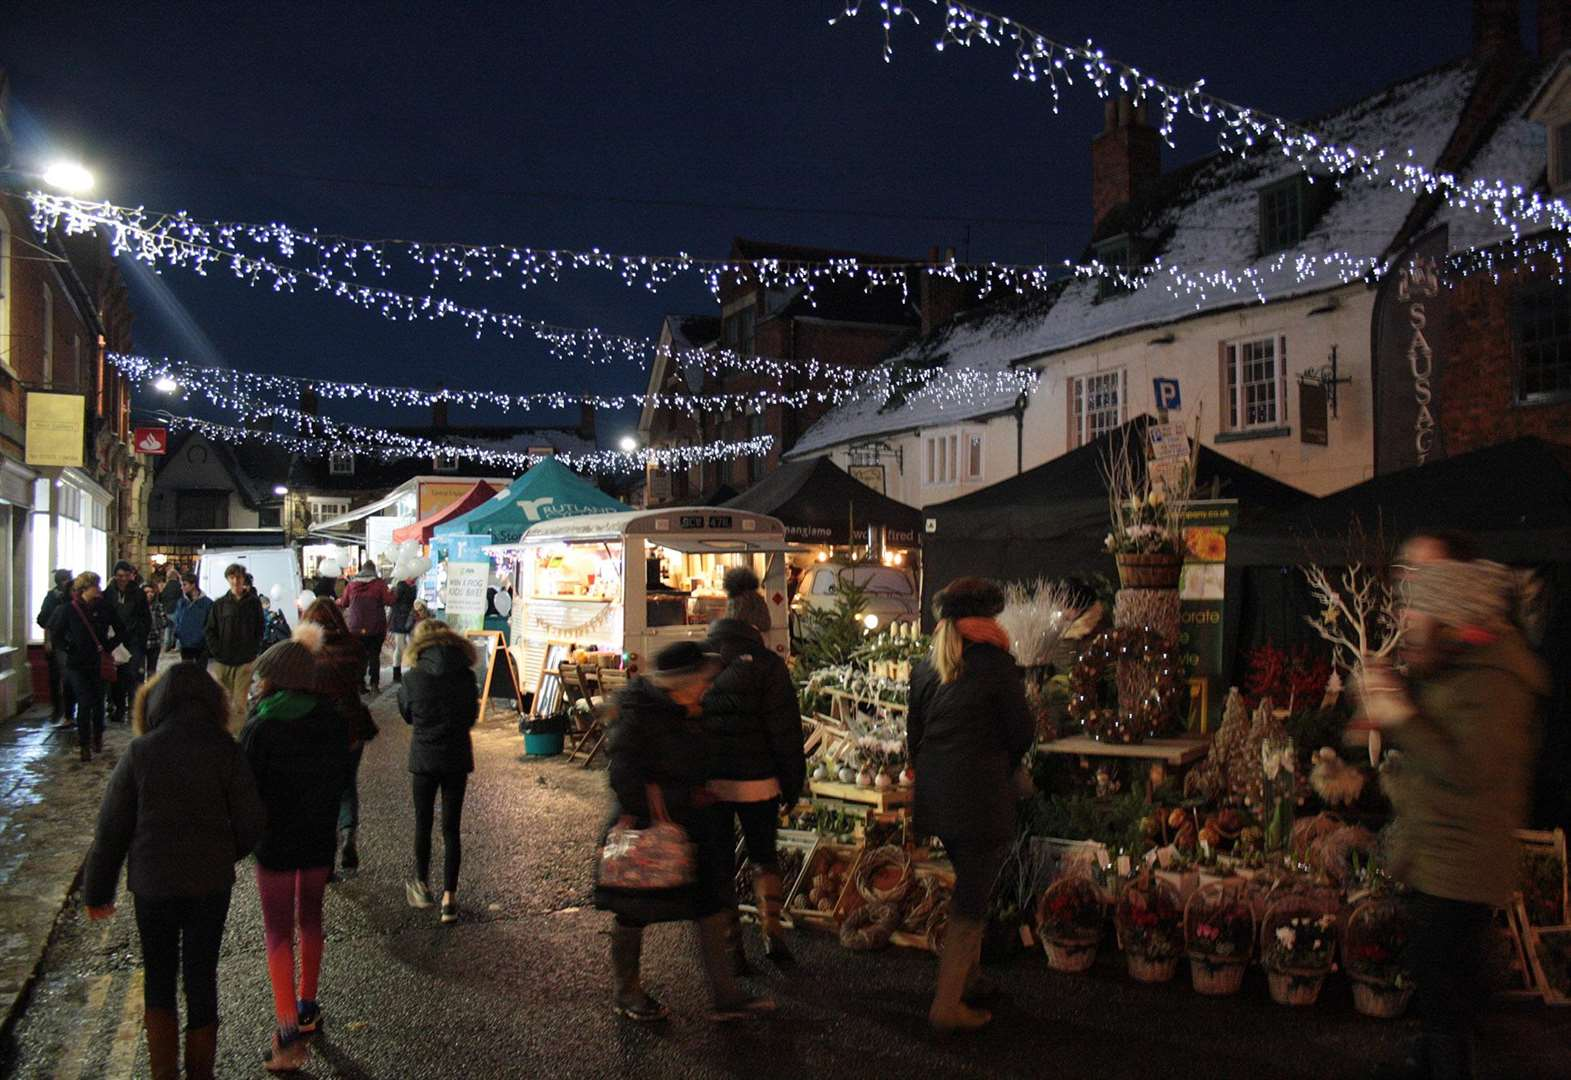 Free parking in Oakham and Uppingham for late night shopping events